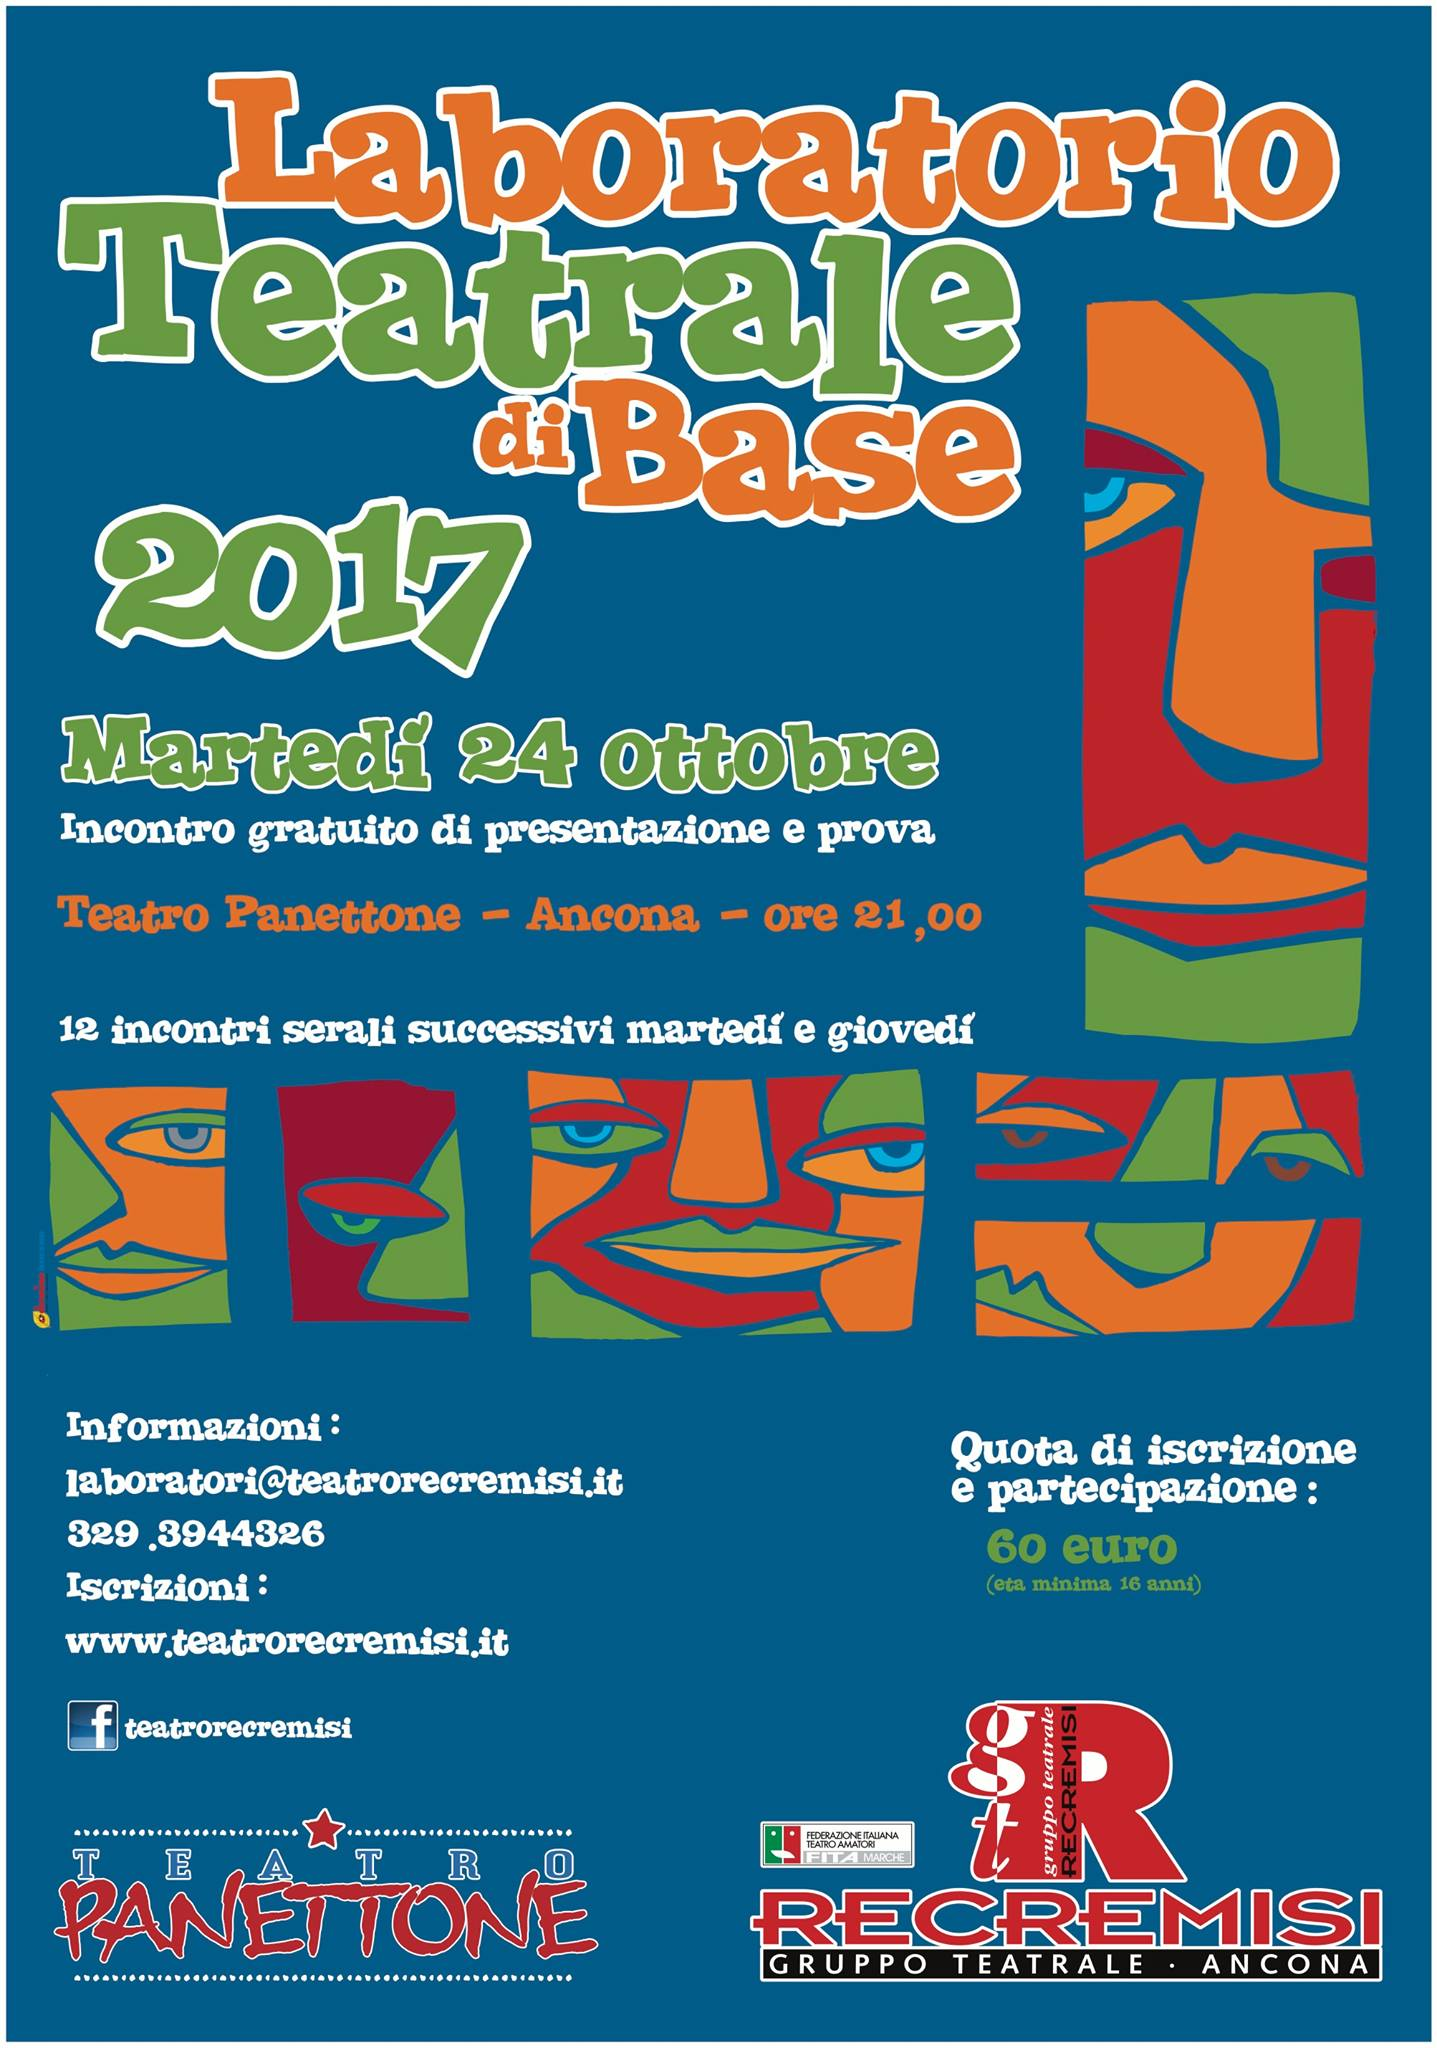 Laboratorio di Base 2017